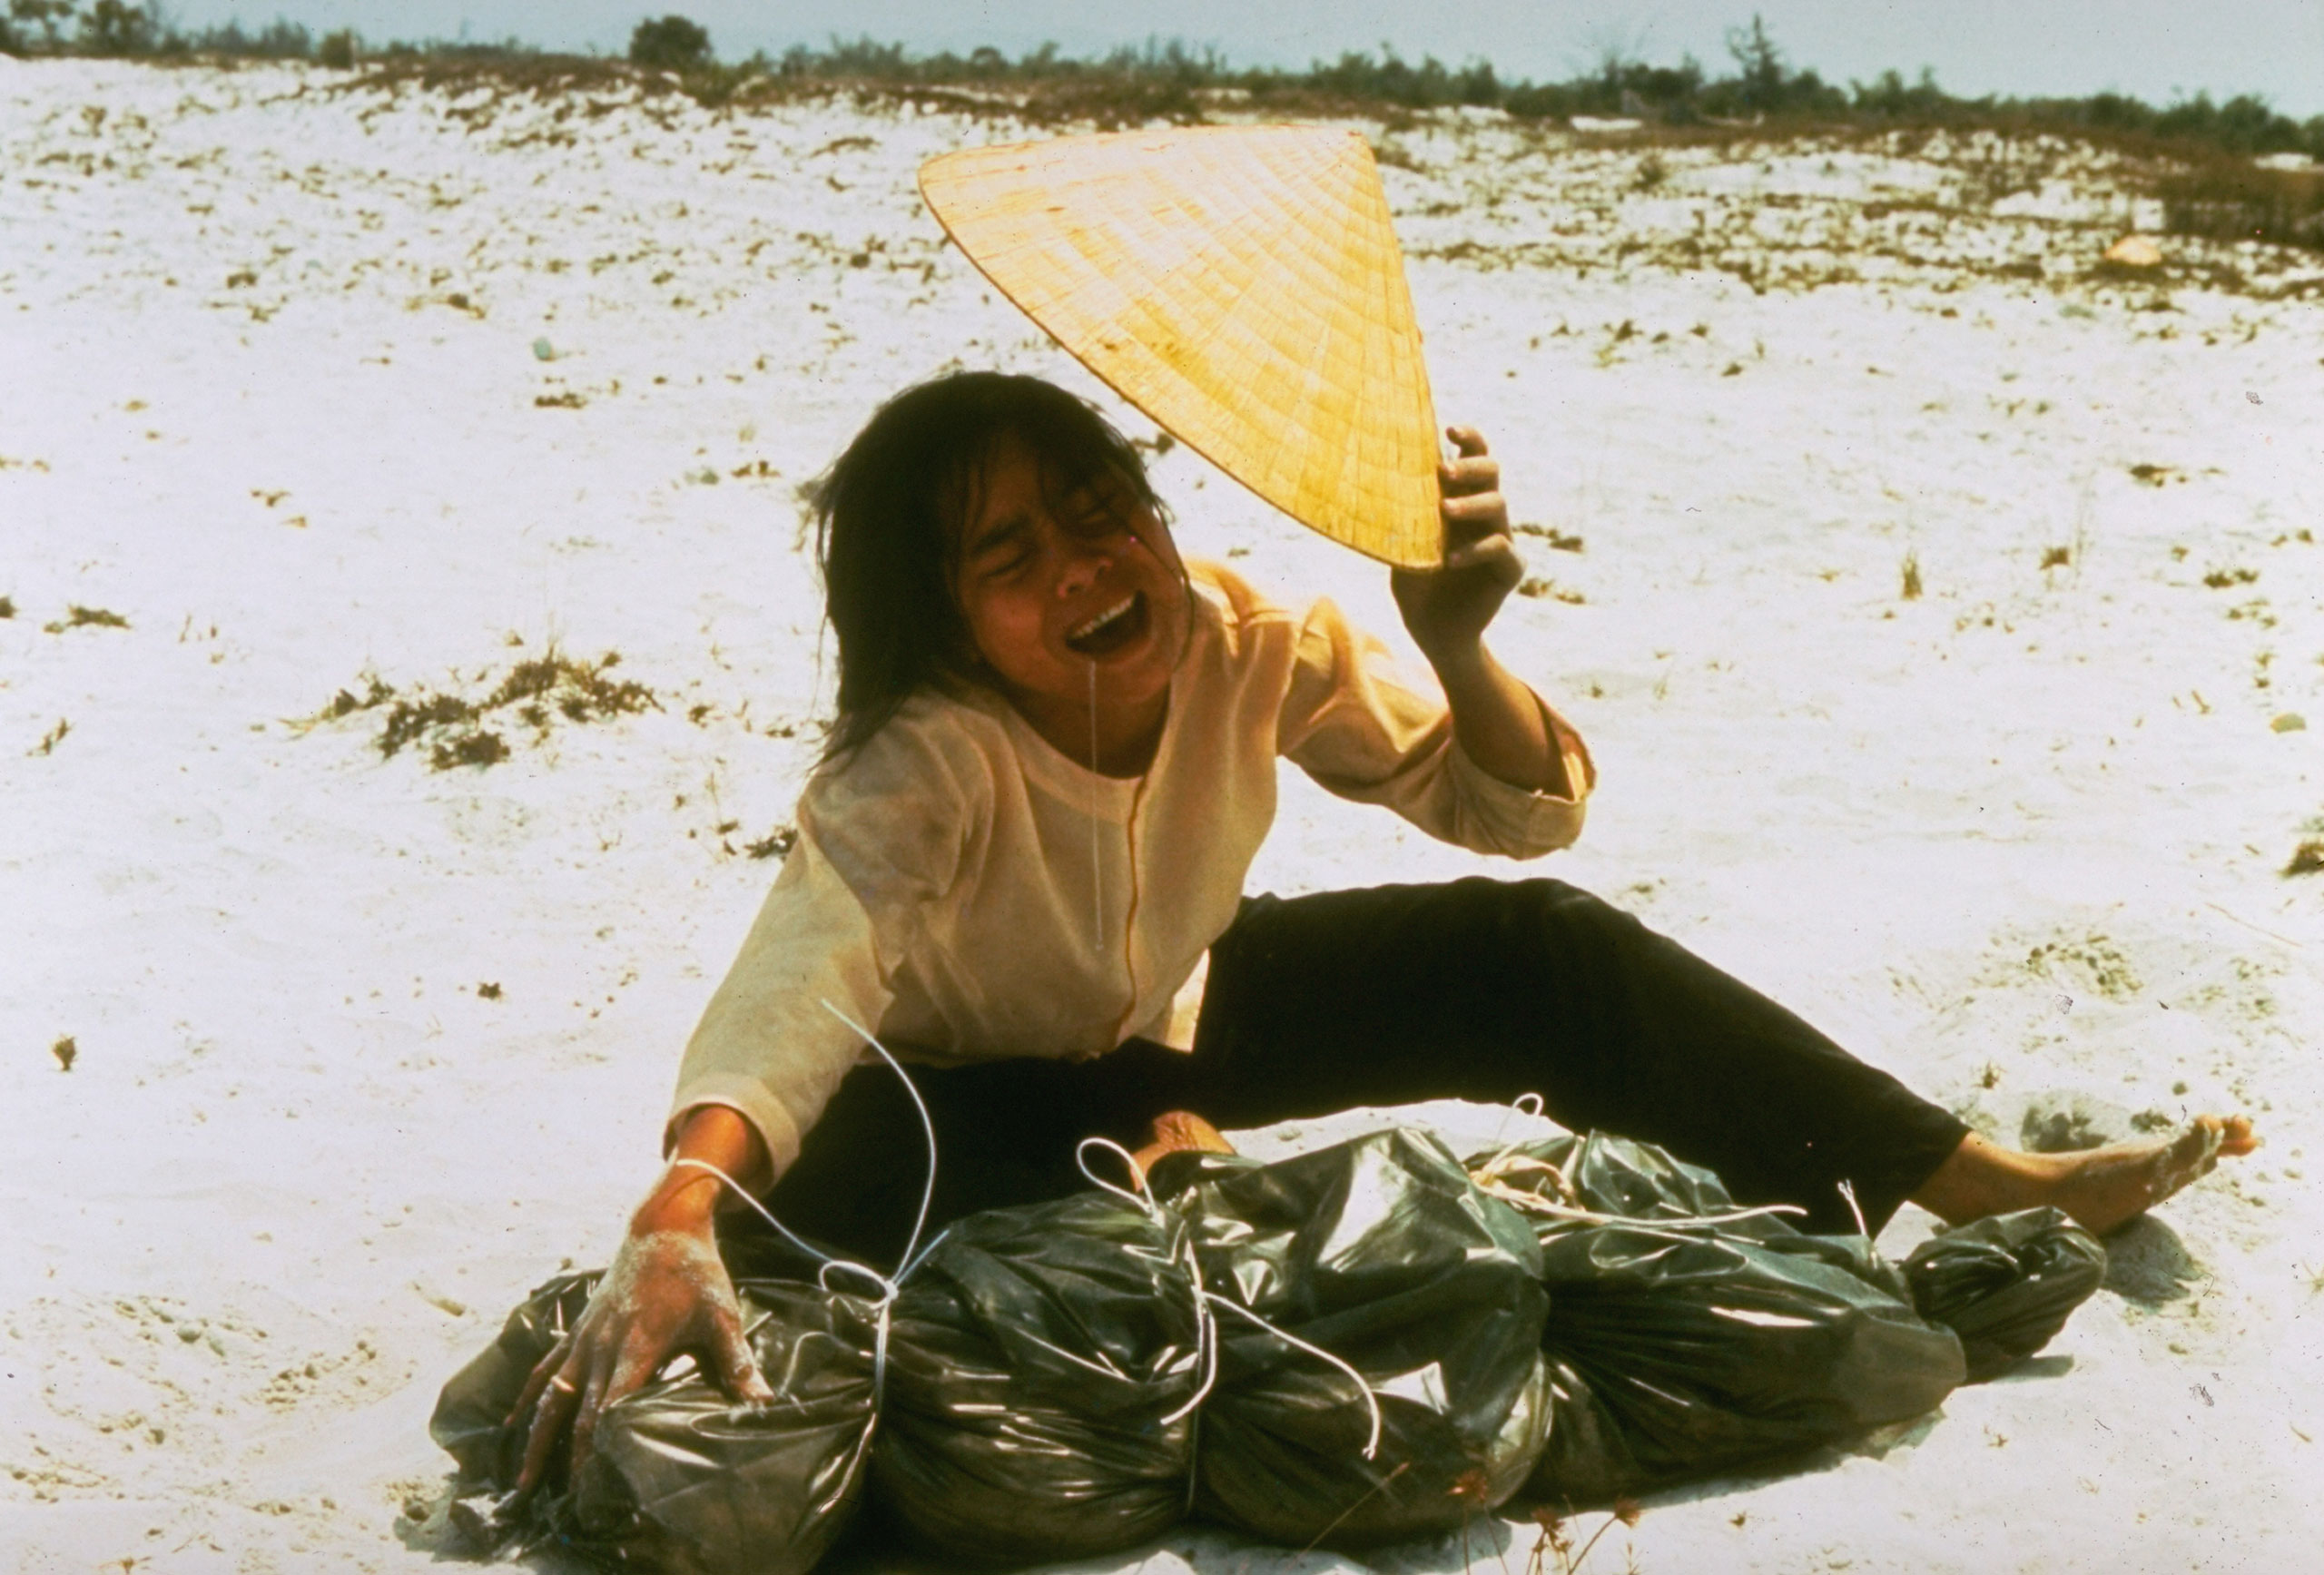 A grieving widow cries over a plastic bag containing remains of her husband which were found in mass grave. He was killed during the Tet offensive in 1968.